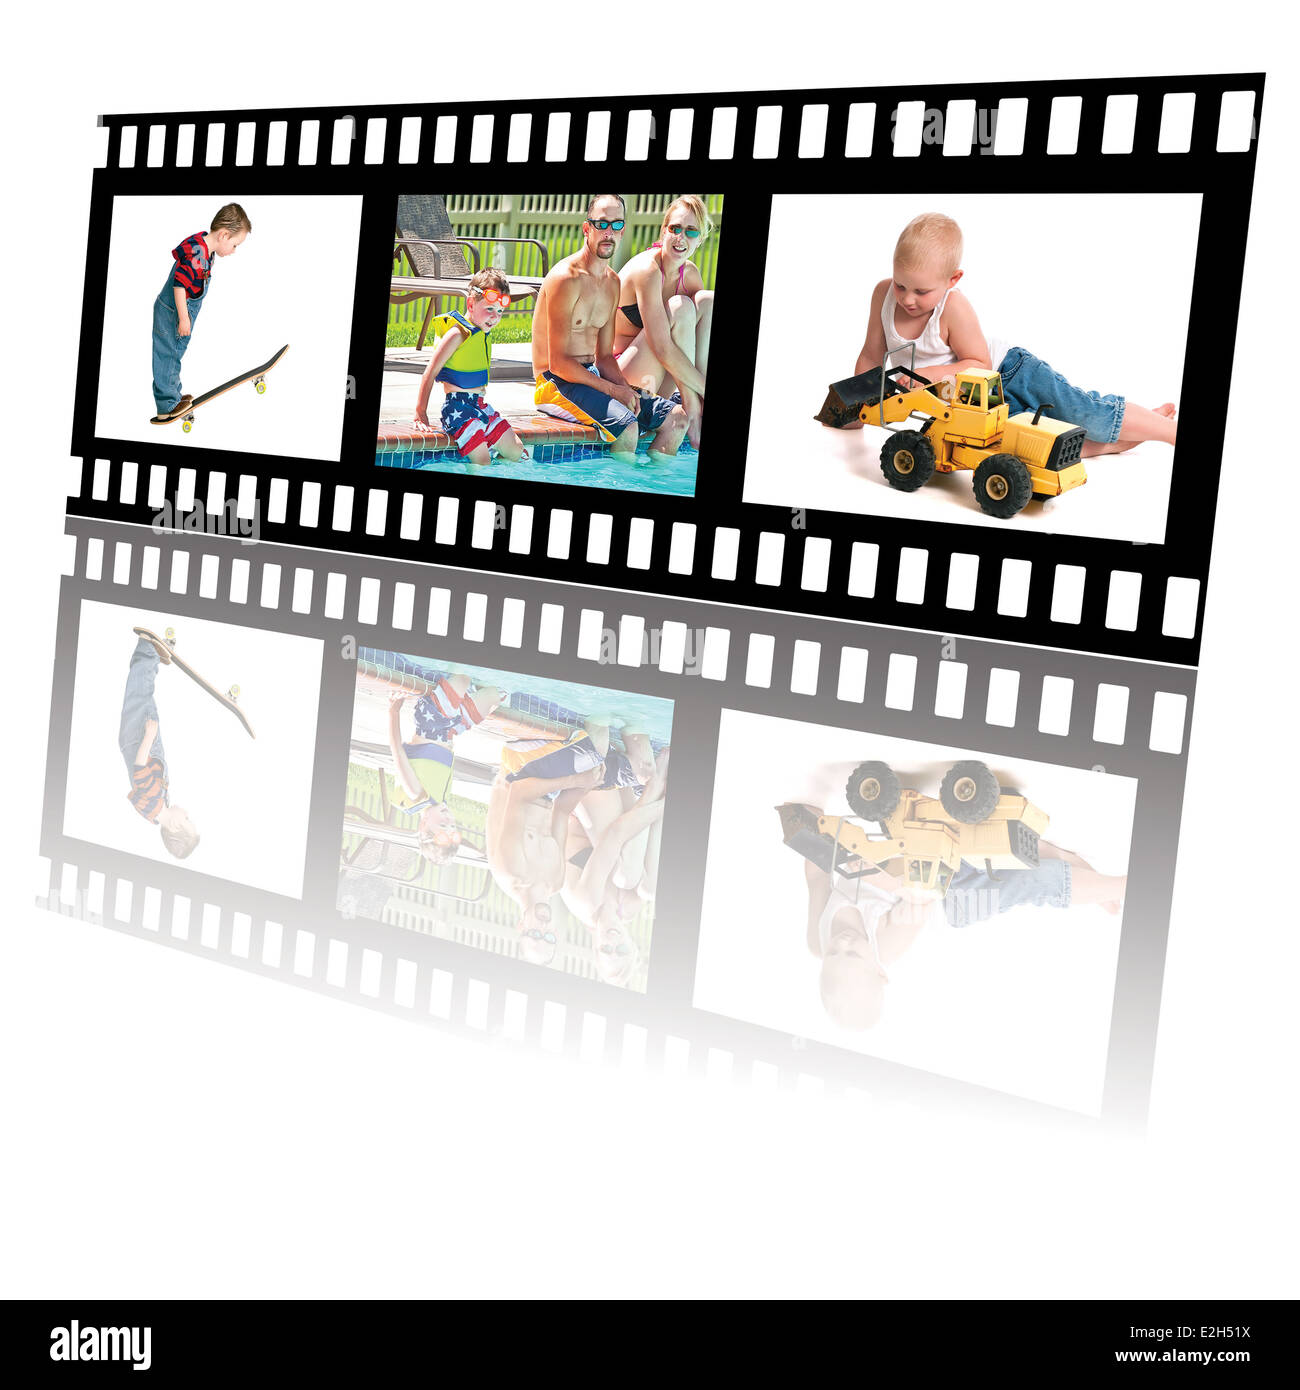 Filmstrip Of Summer Fun Activities For Little Boys And Family Stock